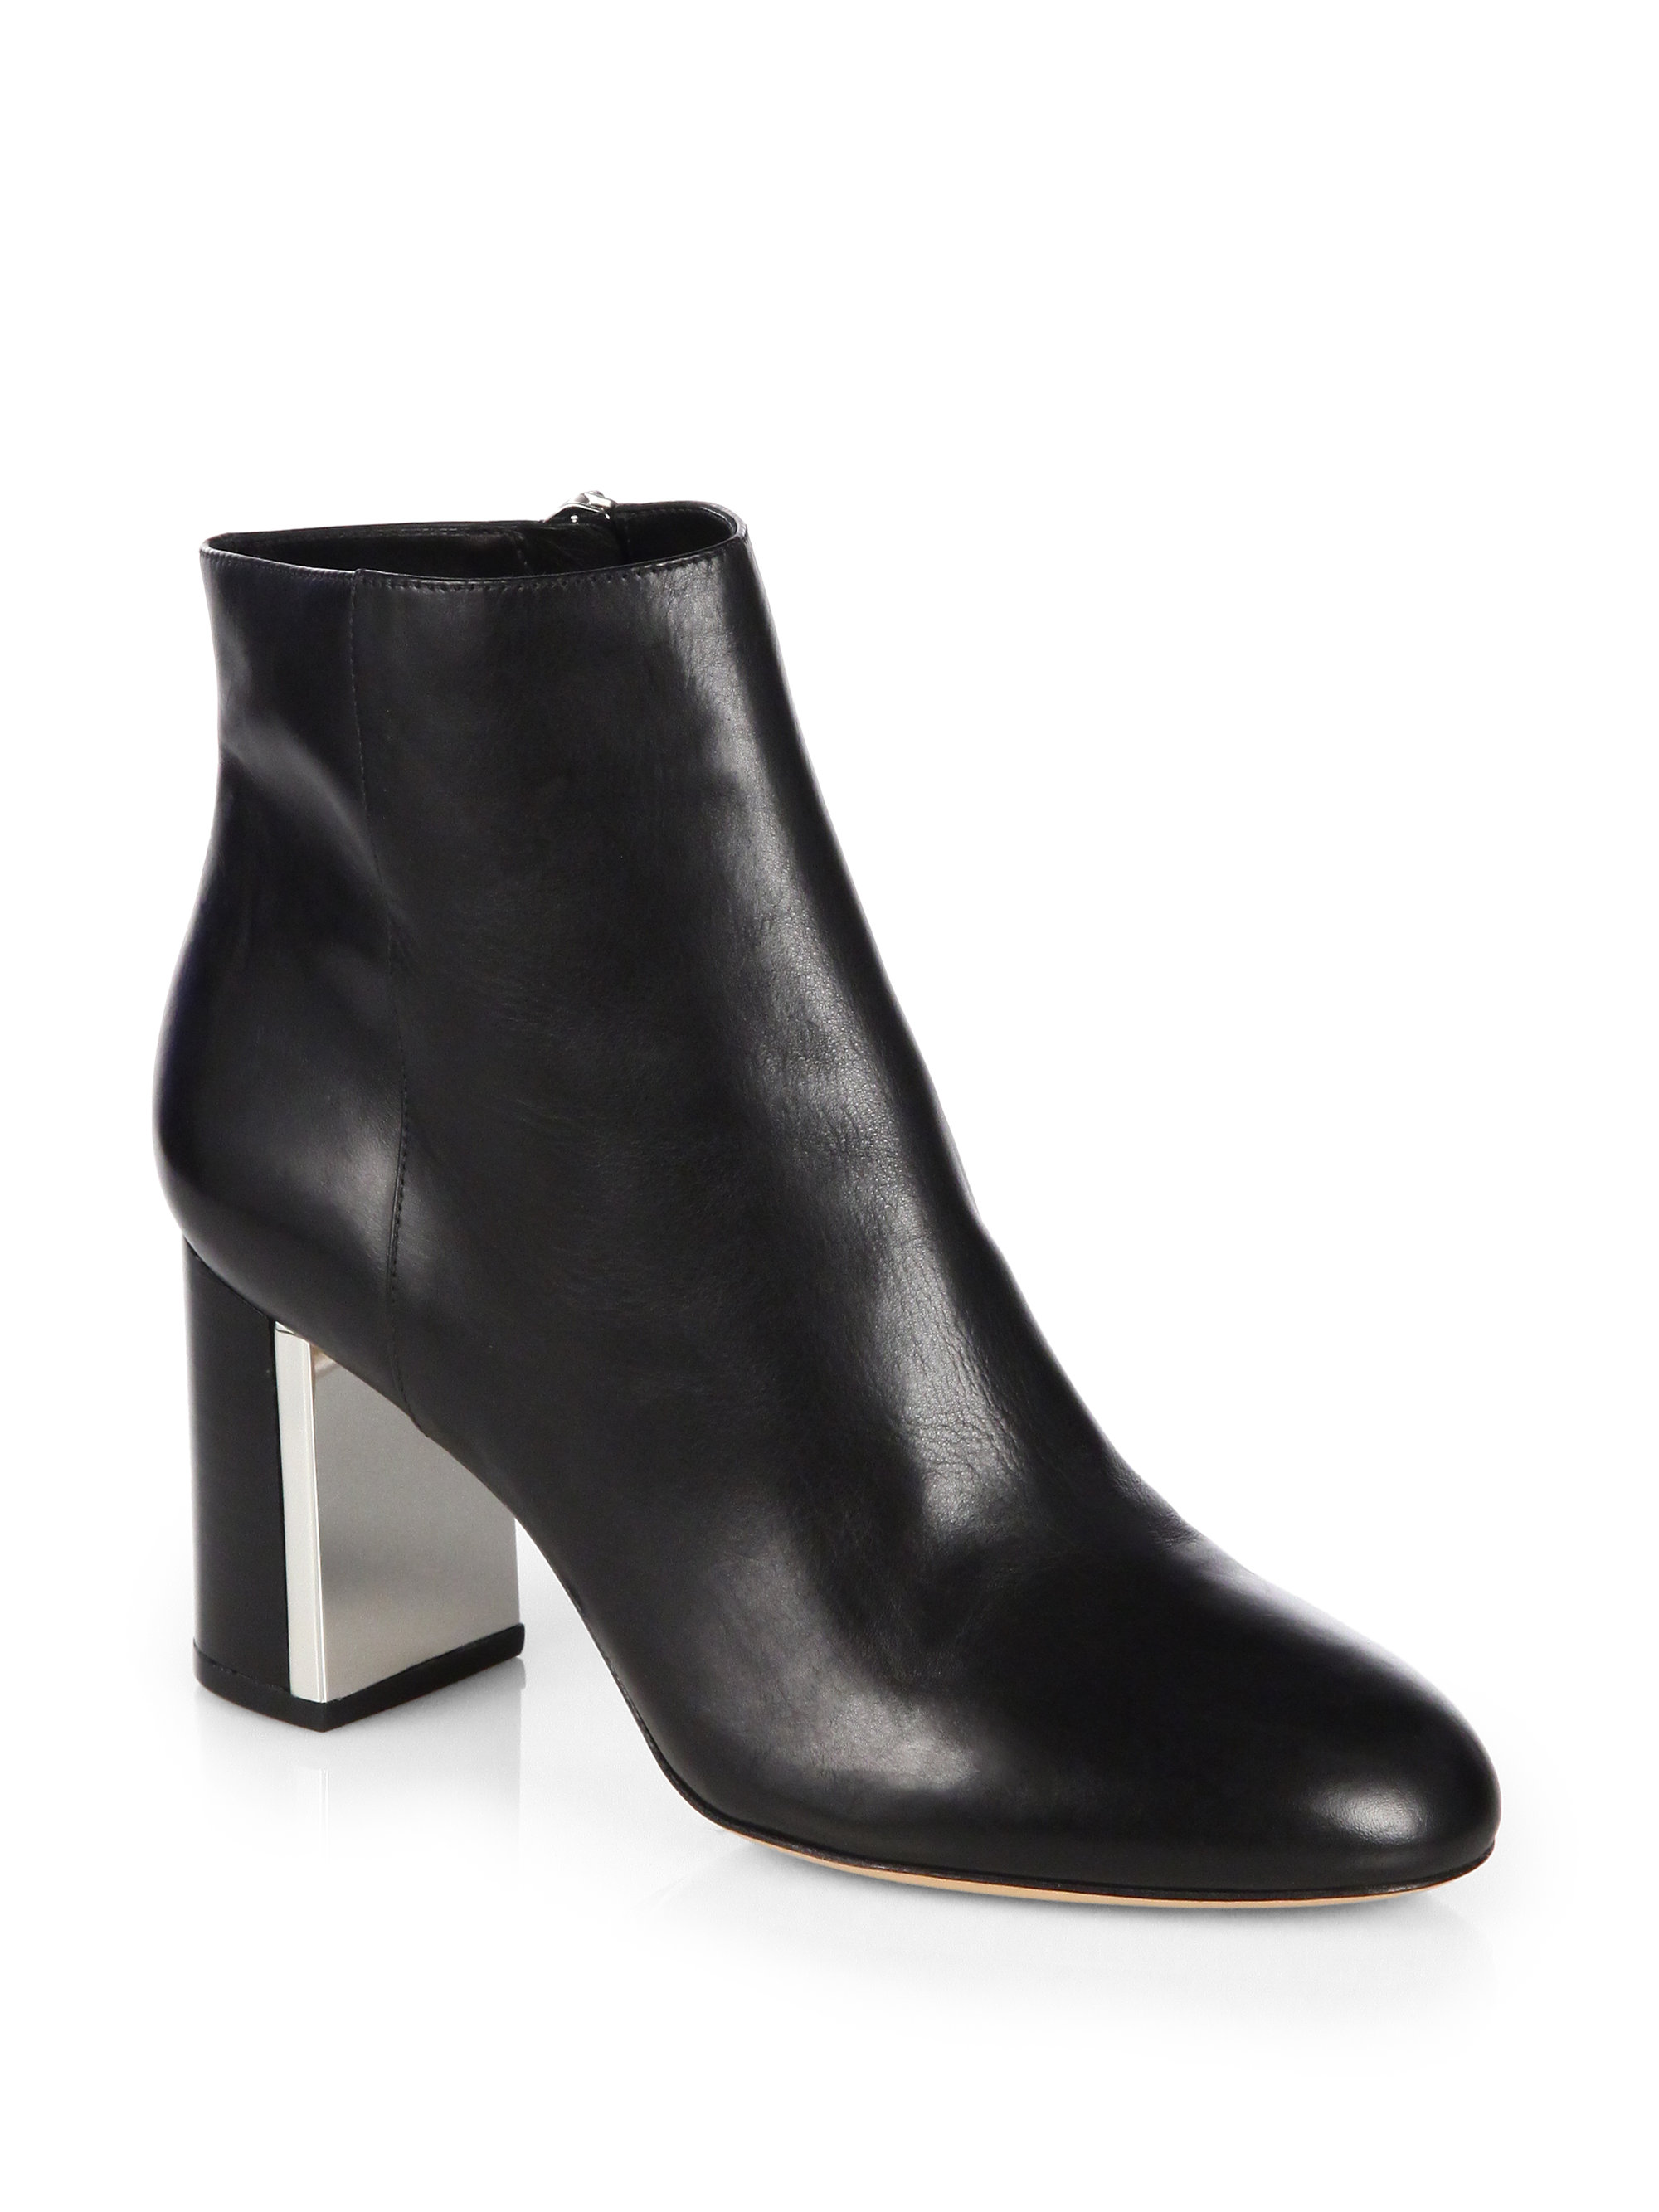 Michael Kors Vivi Leather Ankle Boots In Black | Lyst